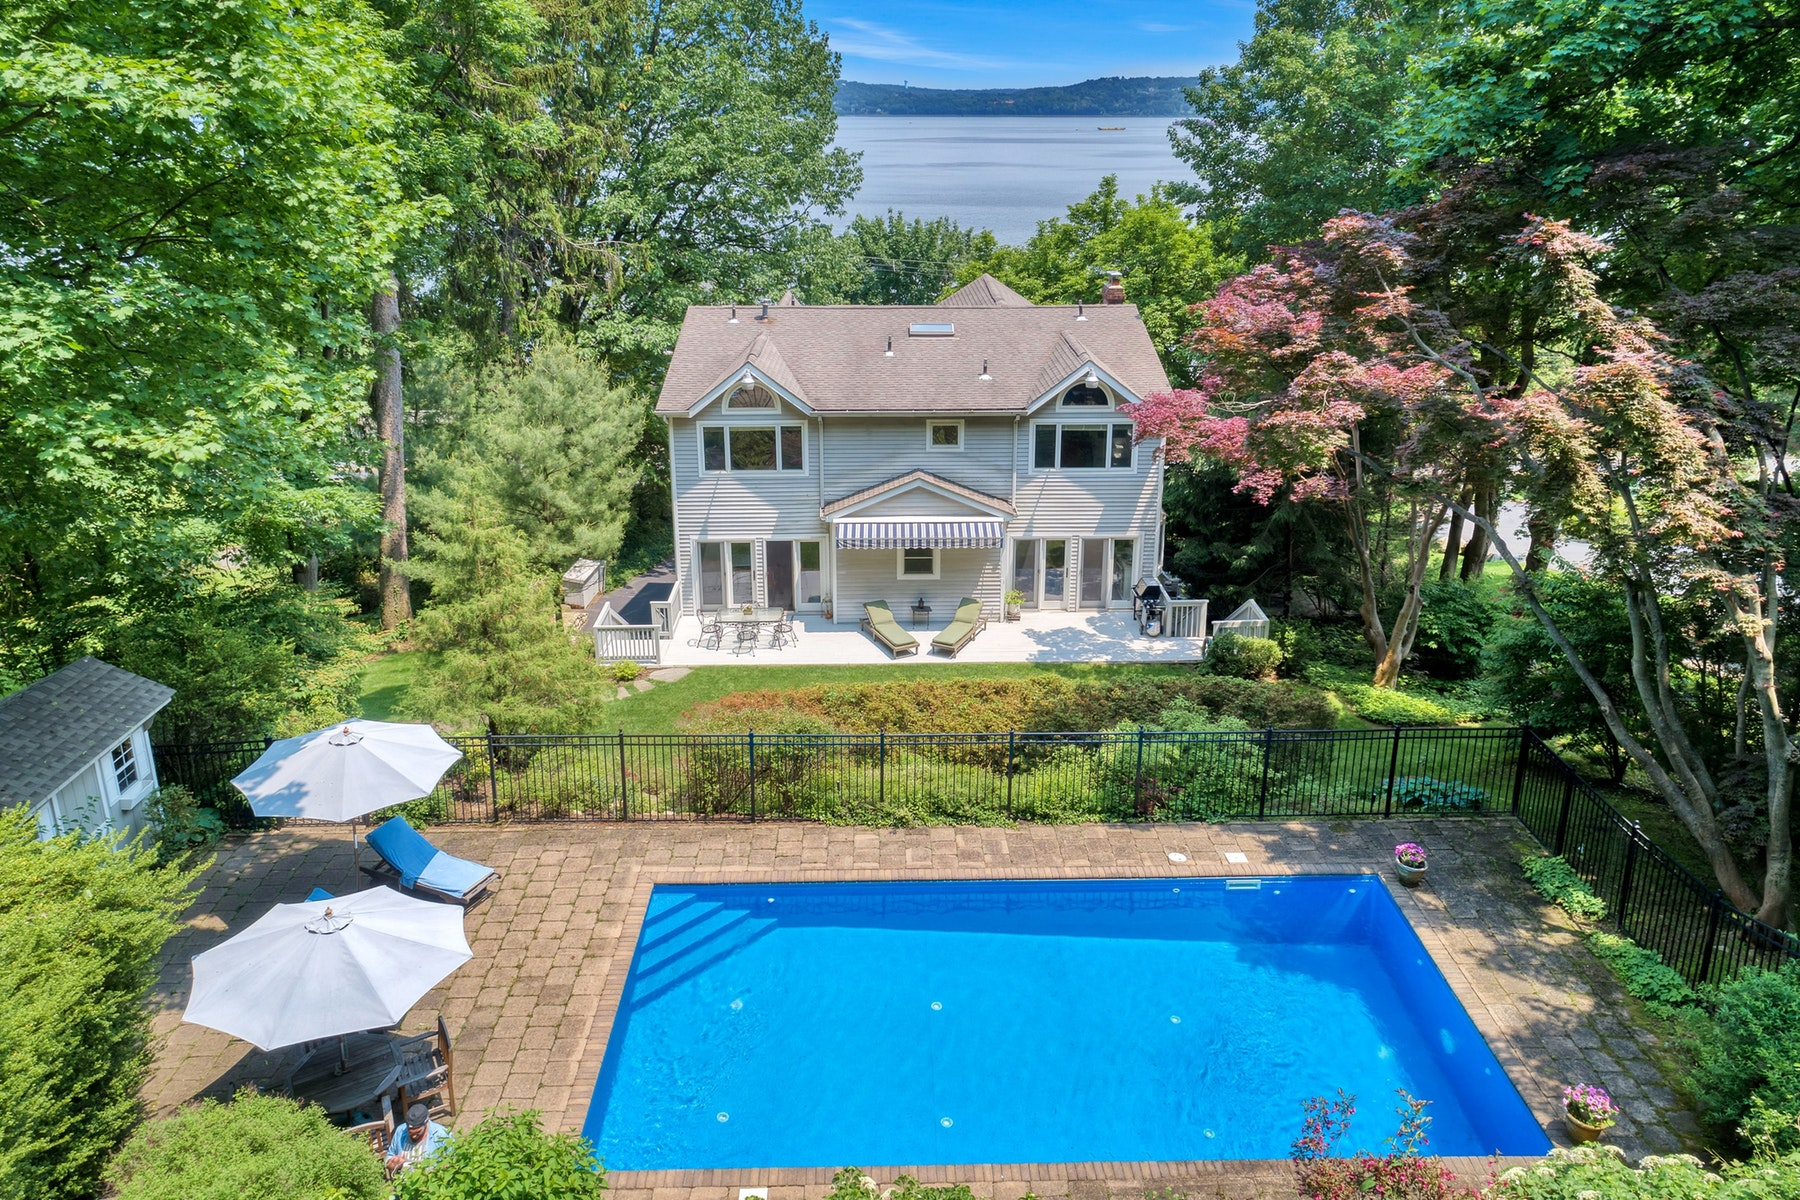 Single Family Homes for Sale at Hudson River Views 237 River Rd. Grandview, New York 10960 United States